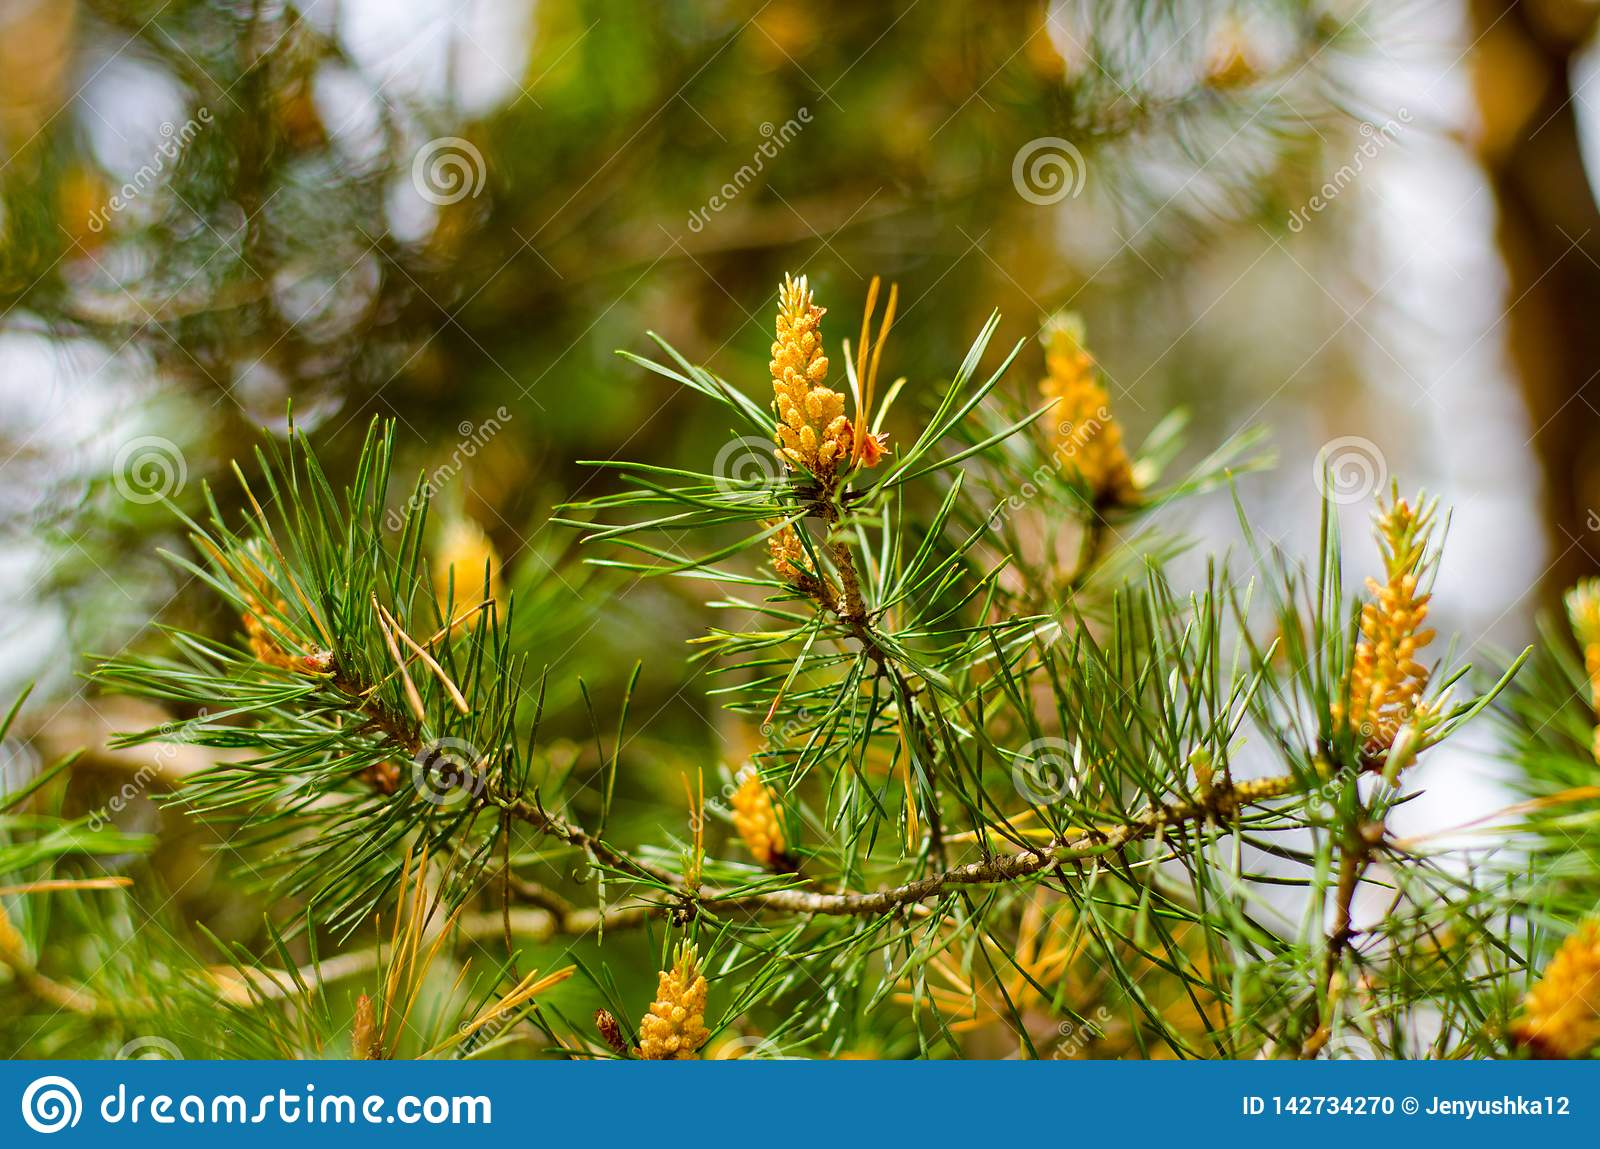 Pine branch with young cones